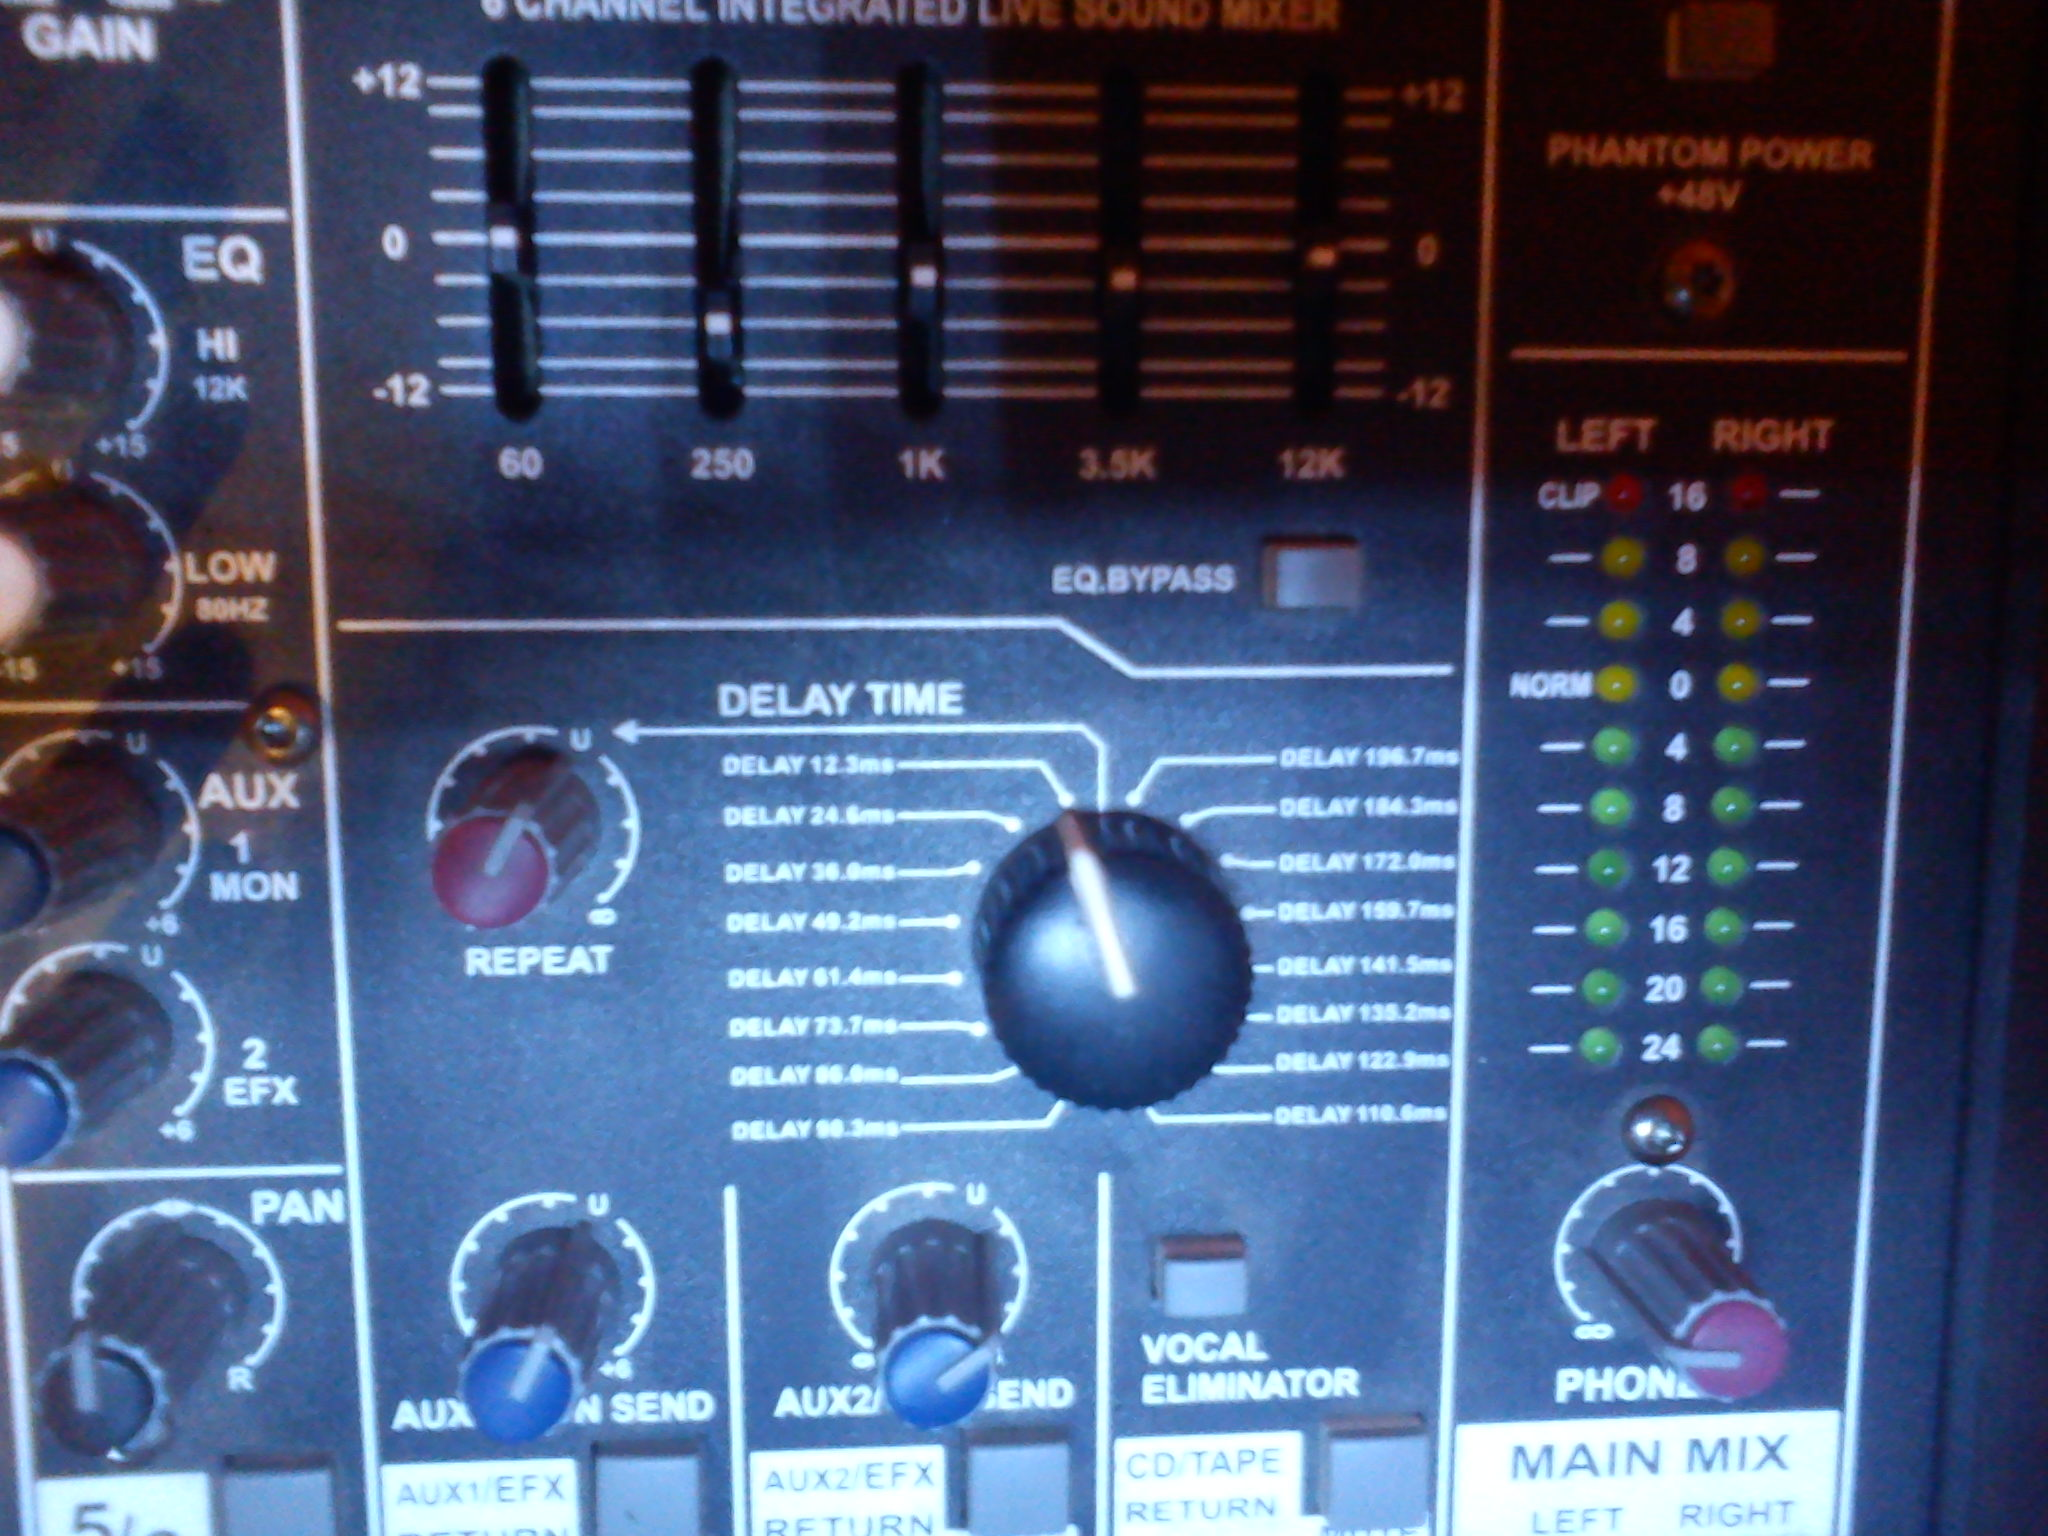 Powermixer Hollywood mv9090 - wbudowana kamera pog�osowa??